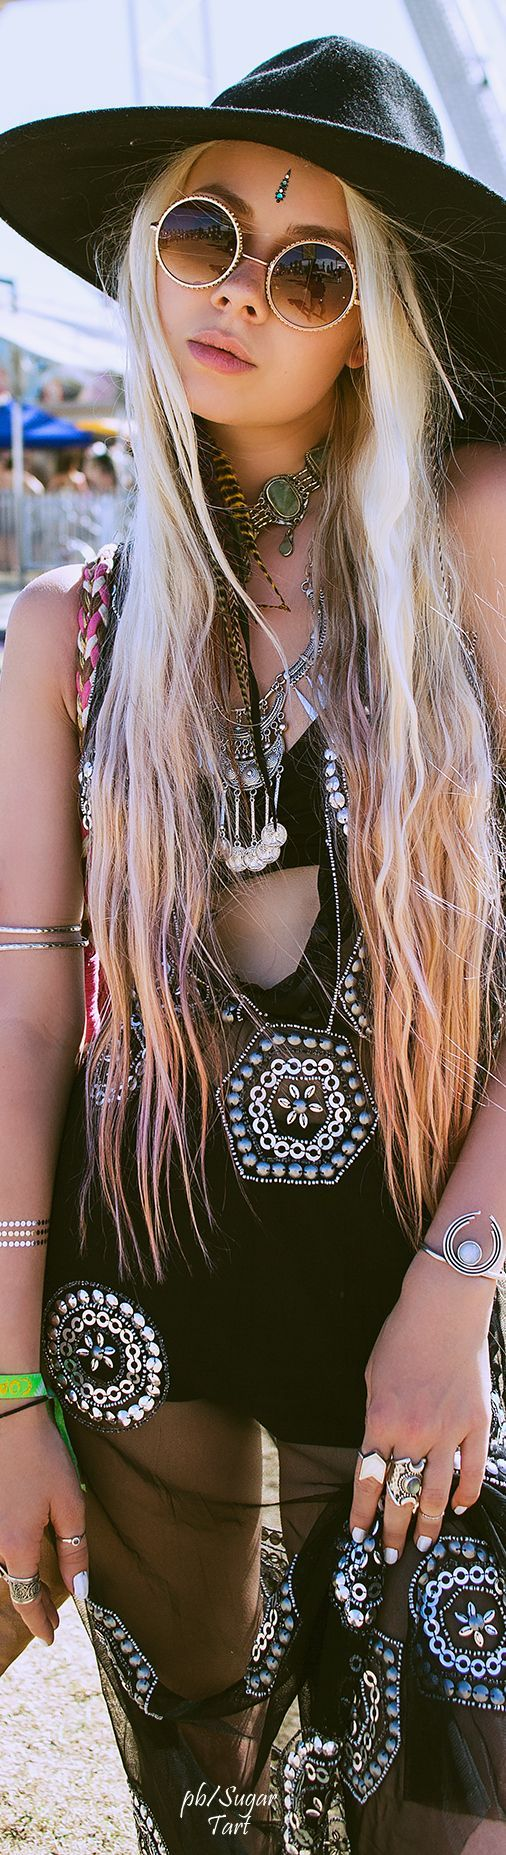 I love that Bohemian is a mix of a little of everything. That's what makes it so interesting